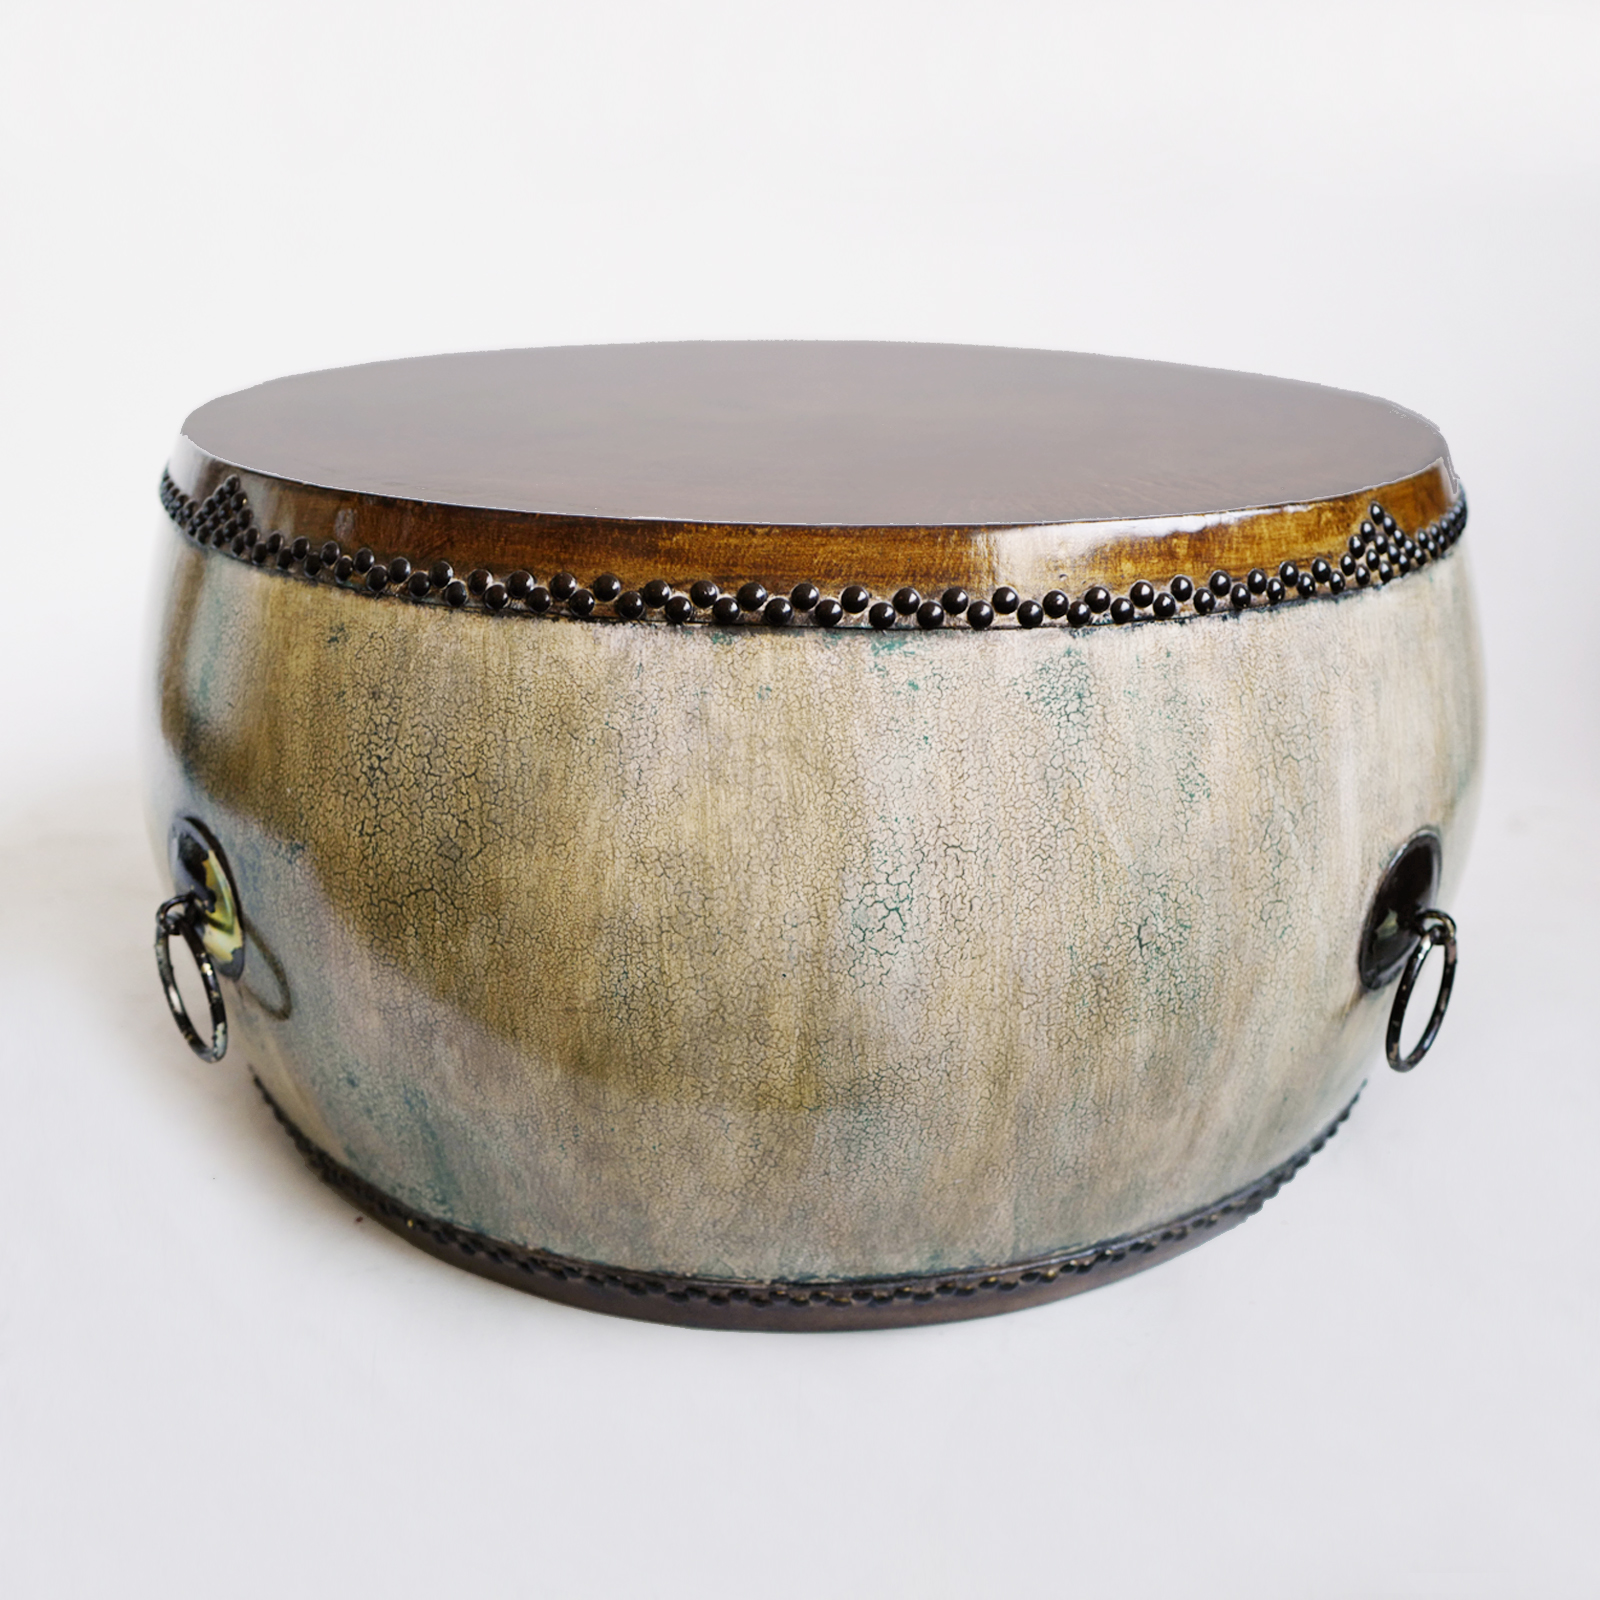 Mongolian Drum Coffee Table Furniture Design Mix Gallery